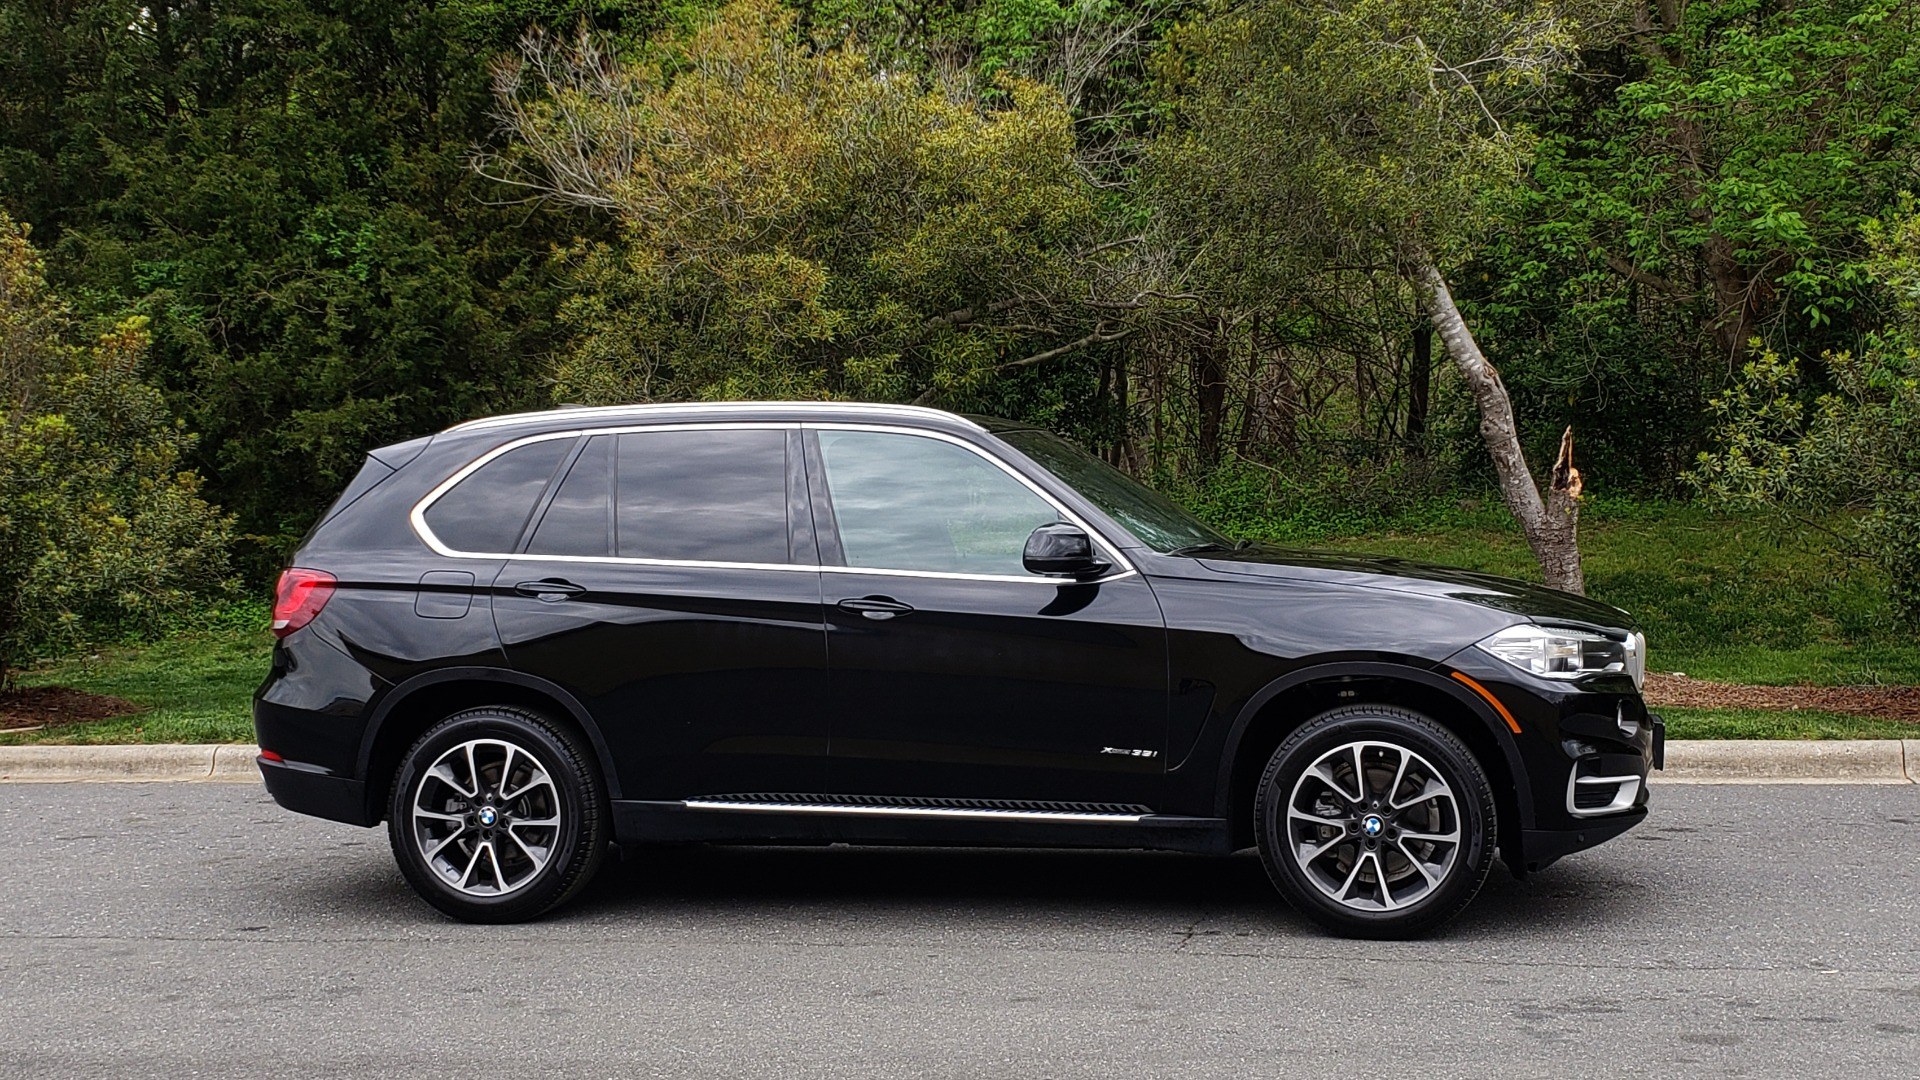 Used 2017 BMW X5 XDRIVE35I / NAV / SUNROOF / REARVIEW / HTD STS for sale Sold at Formula Imports in Charlotte NC 28227 10